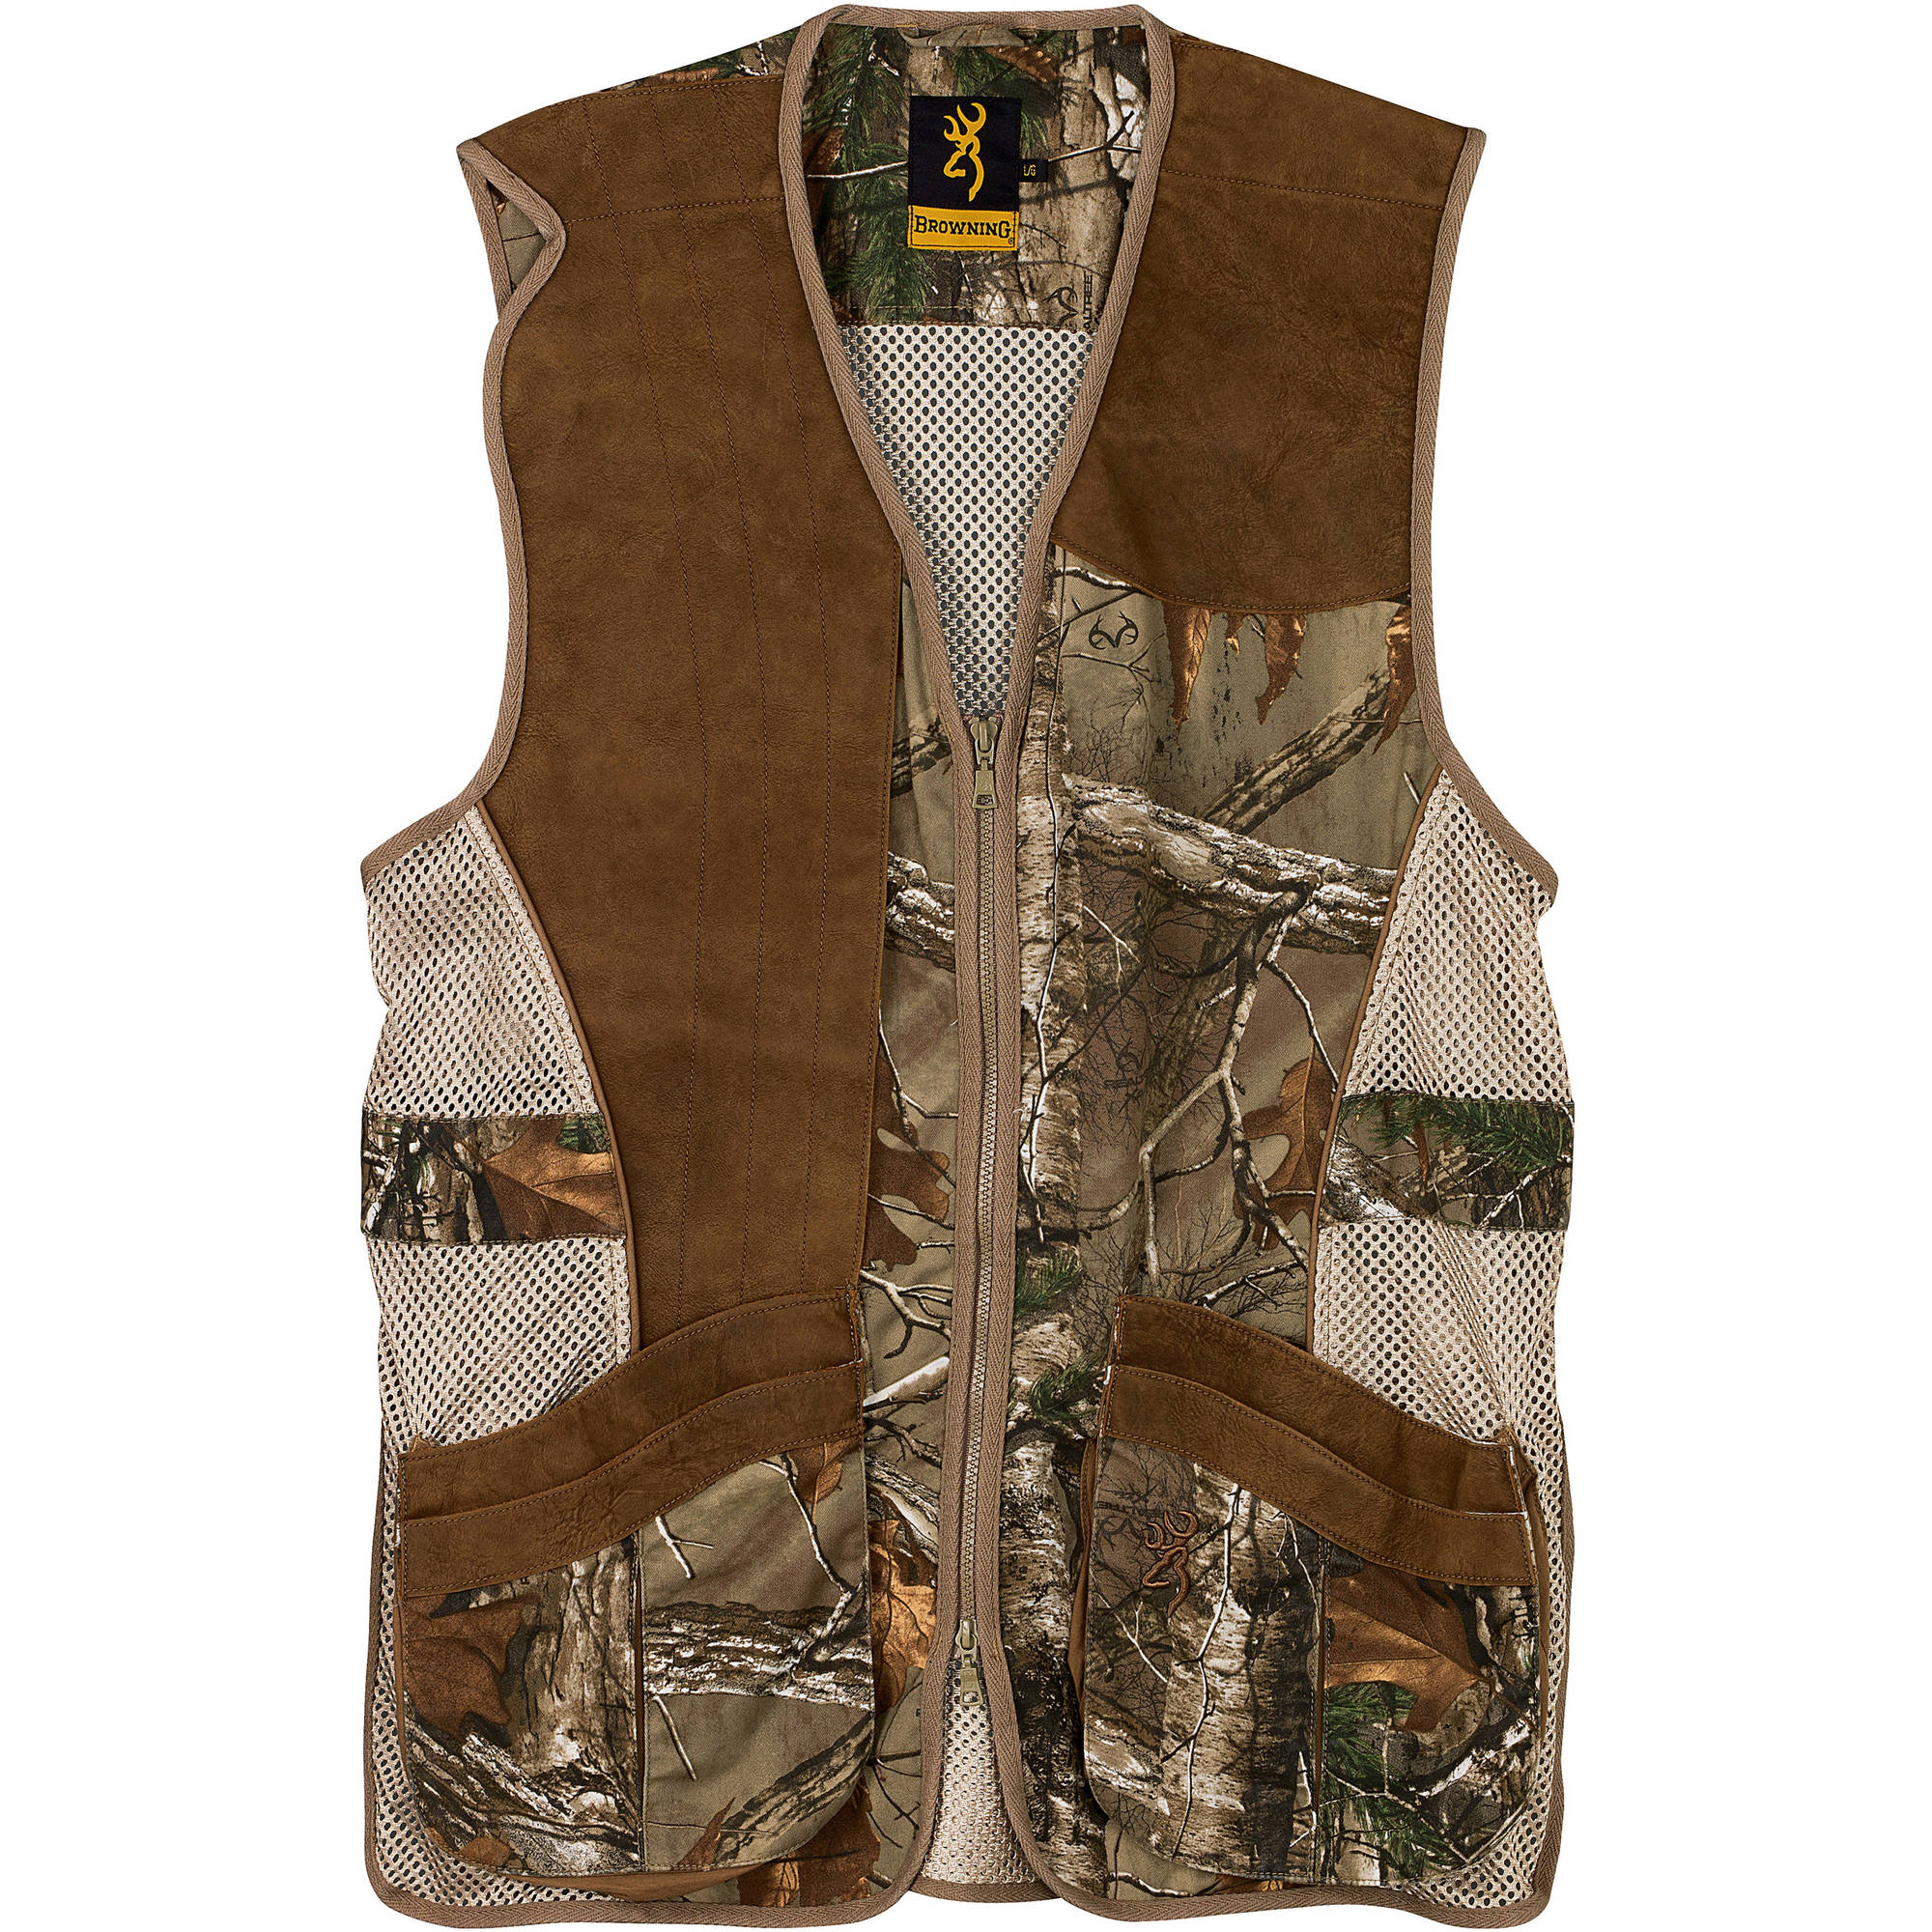 Browning Crossover Vest, Realtreee Xtra/Leather